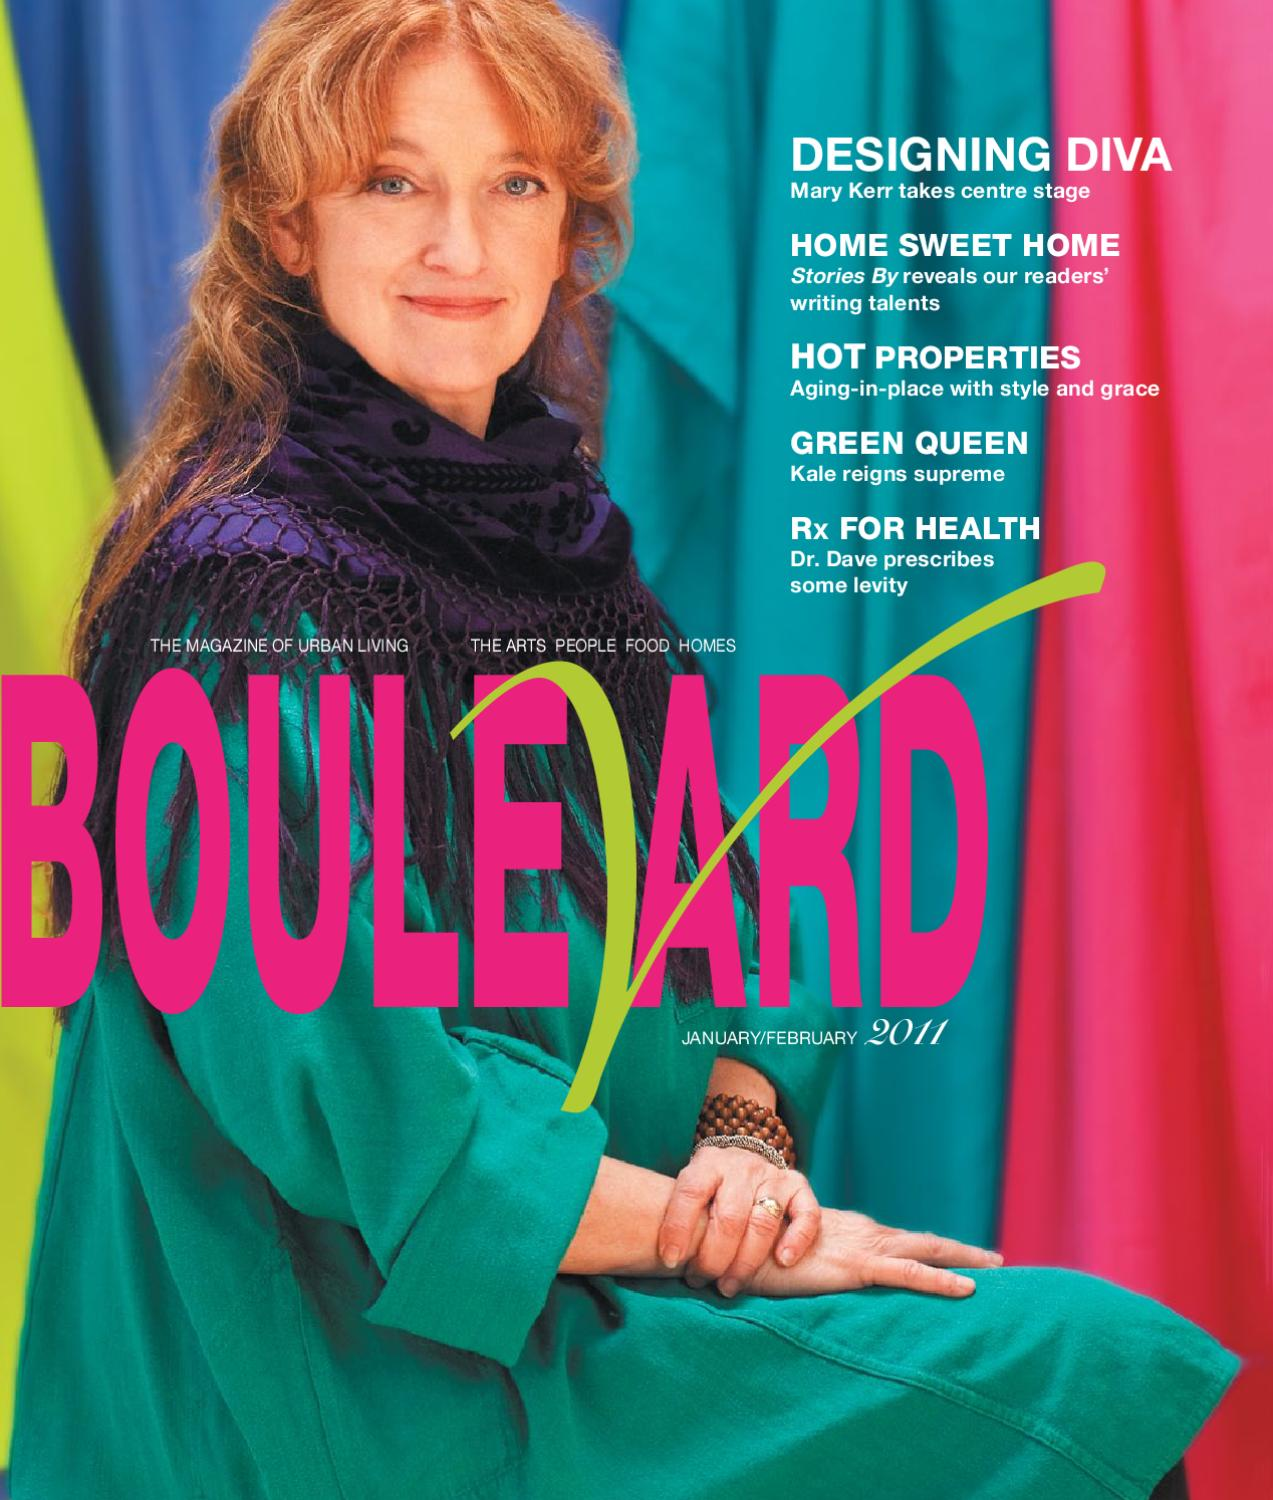 Boulevard Magazine January February 2011 Issue By Kain Lapp Issuu